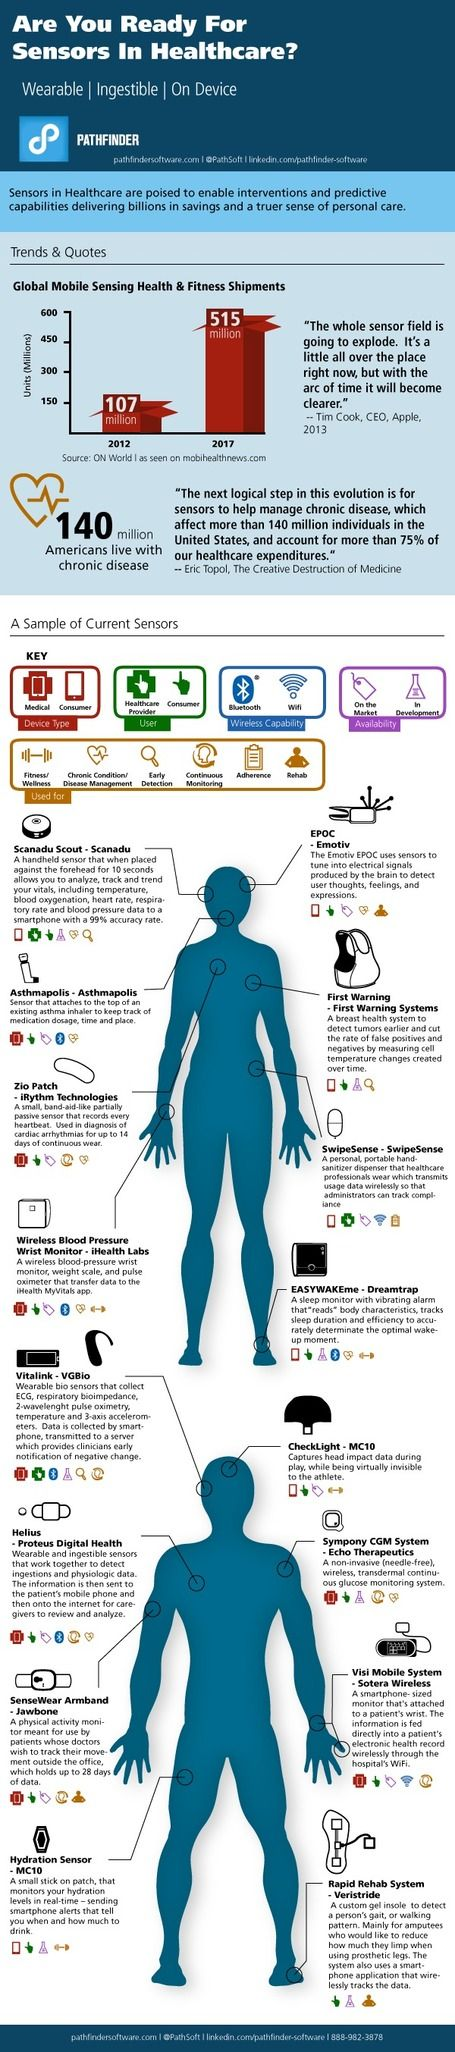 How Innovations Using Sensors Can Disrupt Healthcare (infographic)